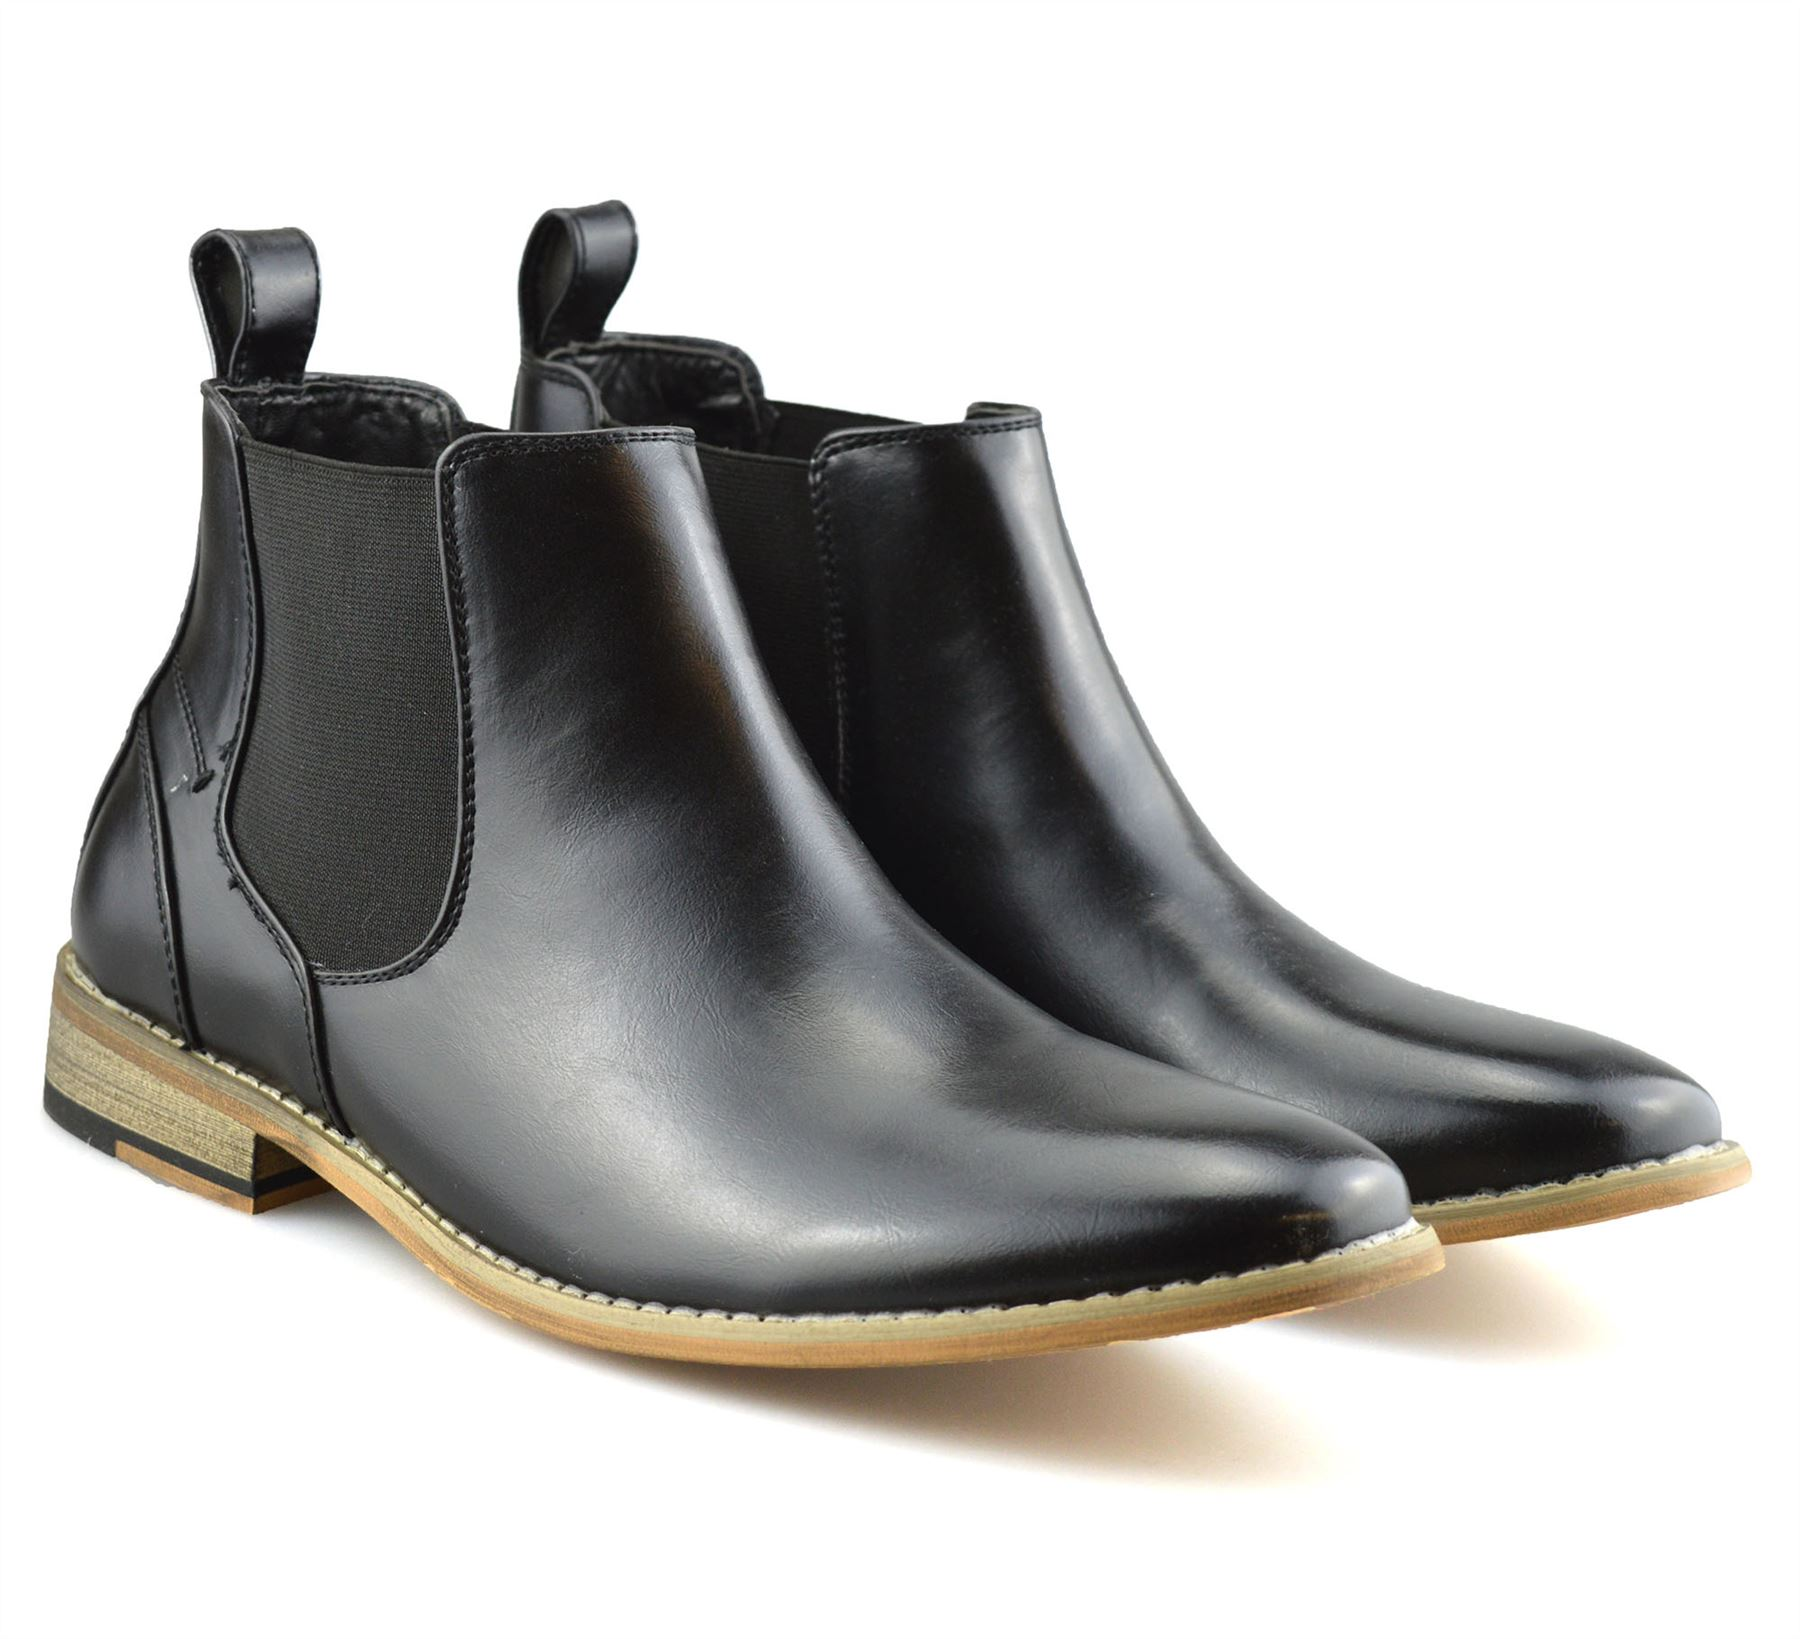 Mens-Memory-Foam-Chelsea-Ankle-Boots-Casual-Smart-Formal-Dealer-Work-Shoes-Size thumbnail 18